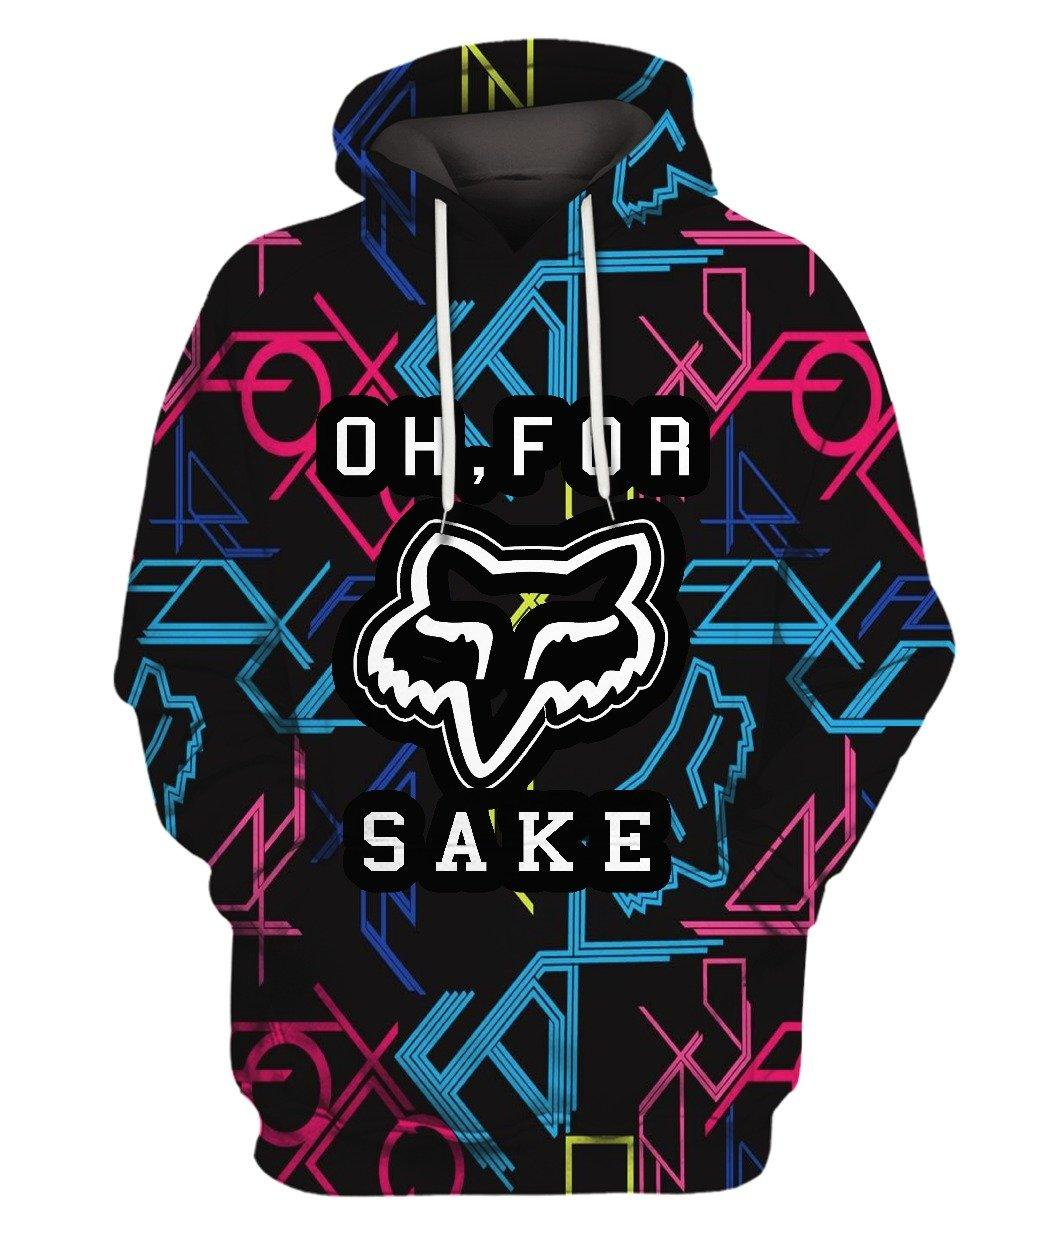 Fox Oh For Sake Full 3d 3d Graphic Printed Tshirt Hoodie Up To 5xl